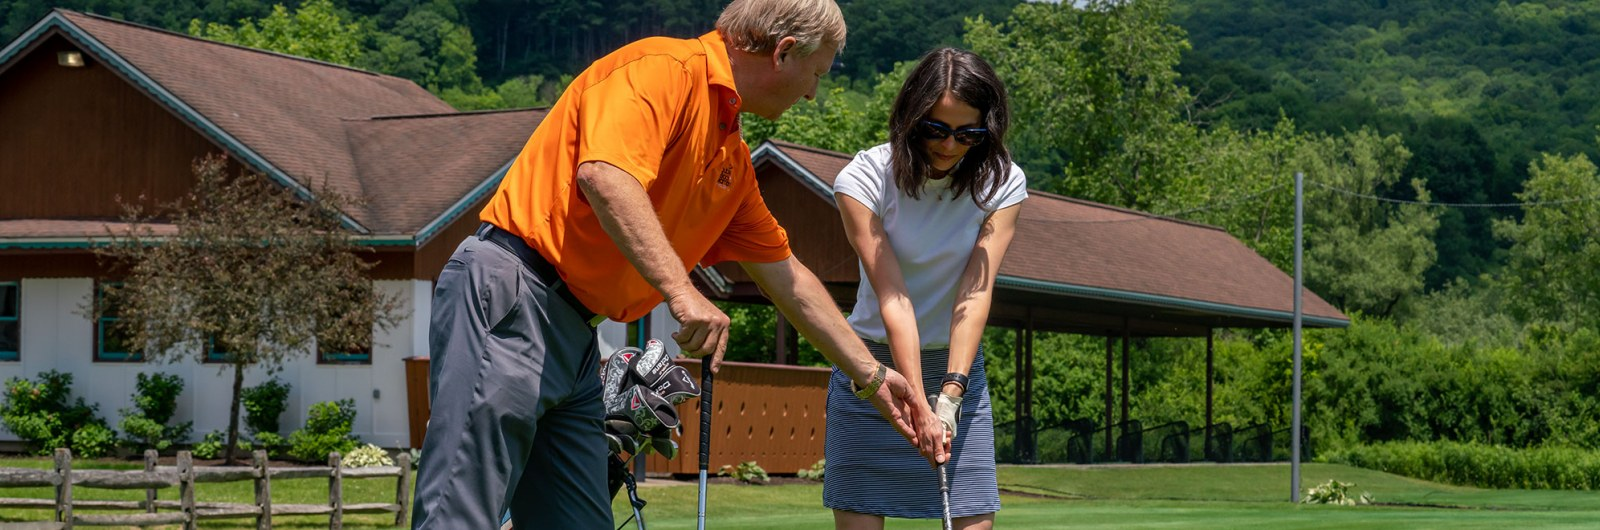 Woman taking golf lesson from instructor